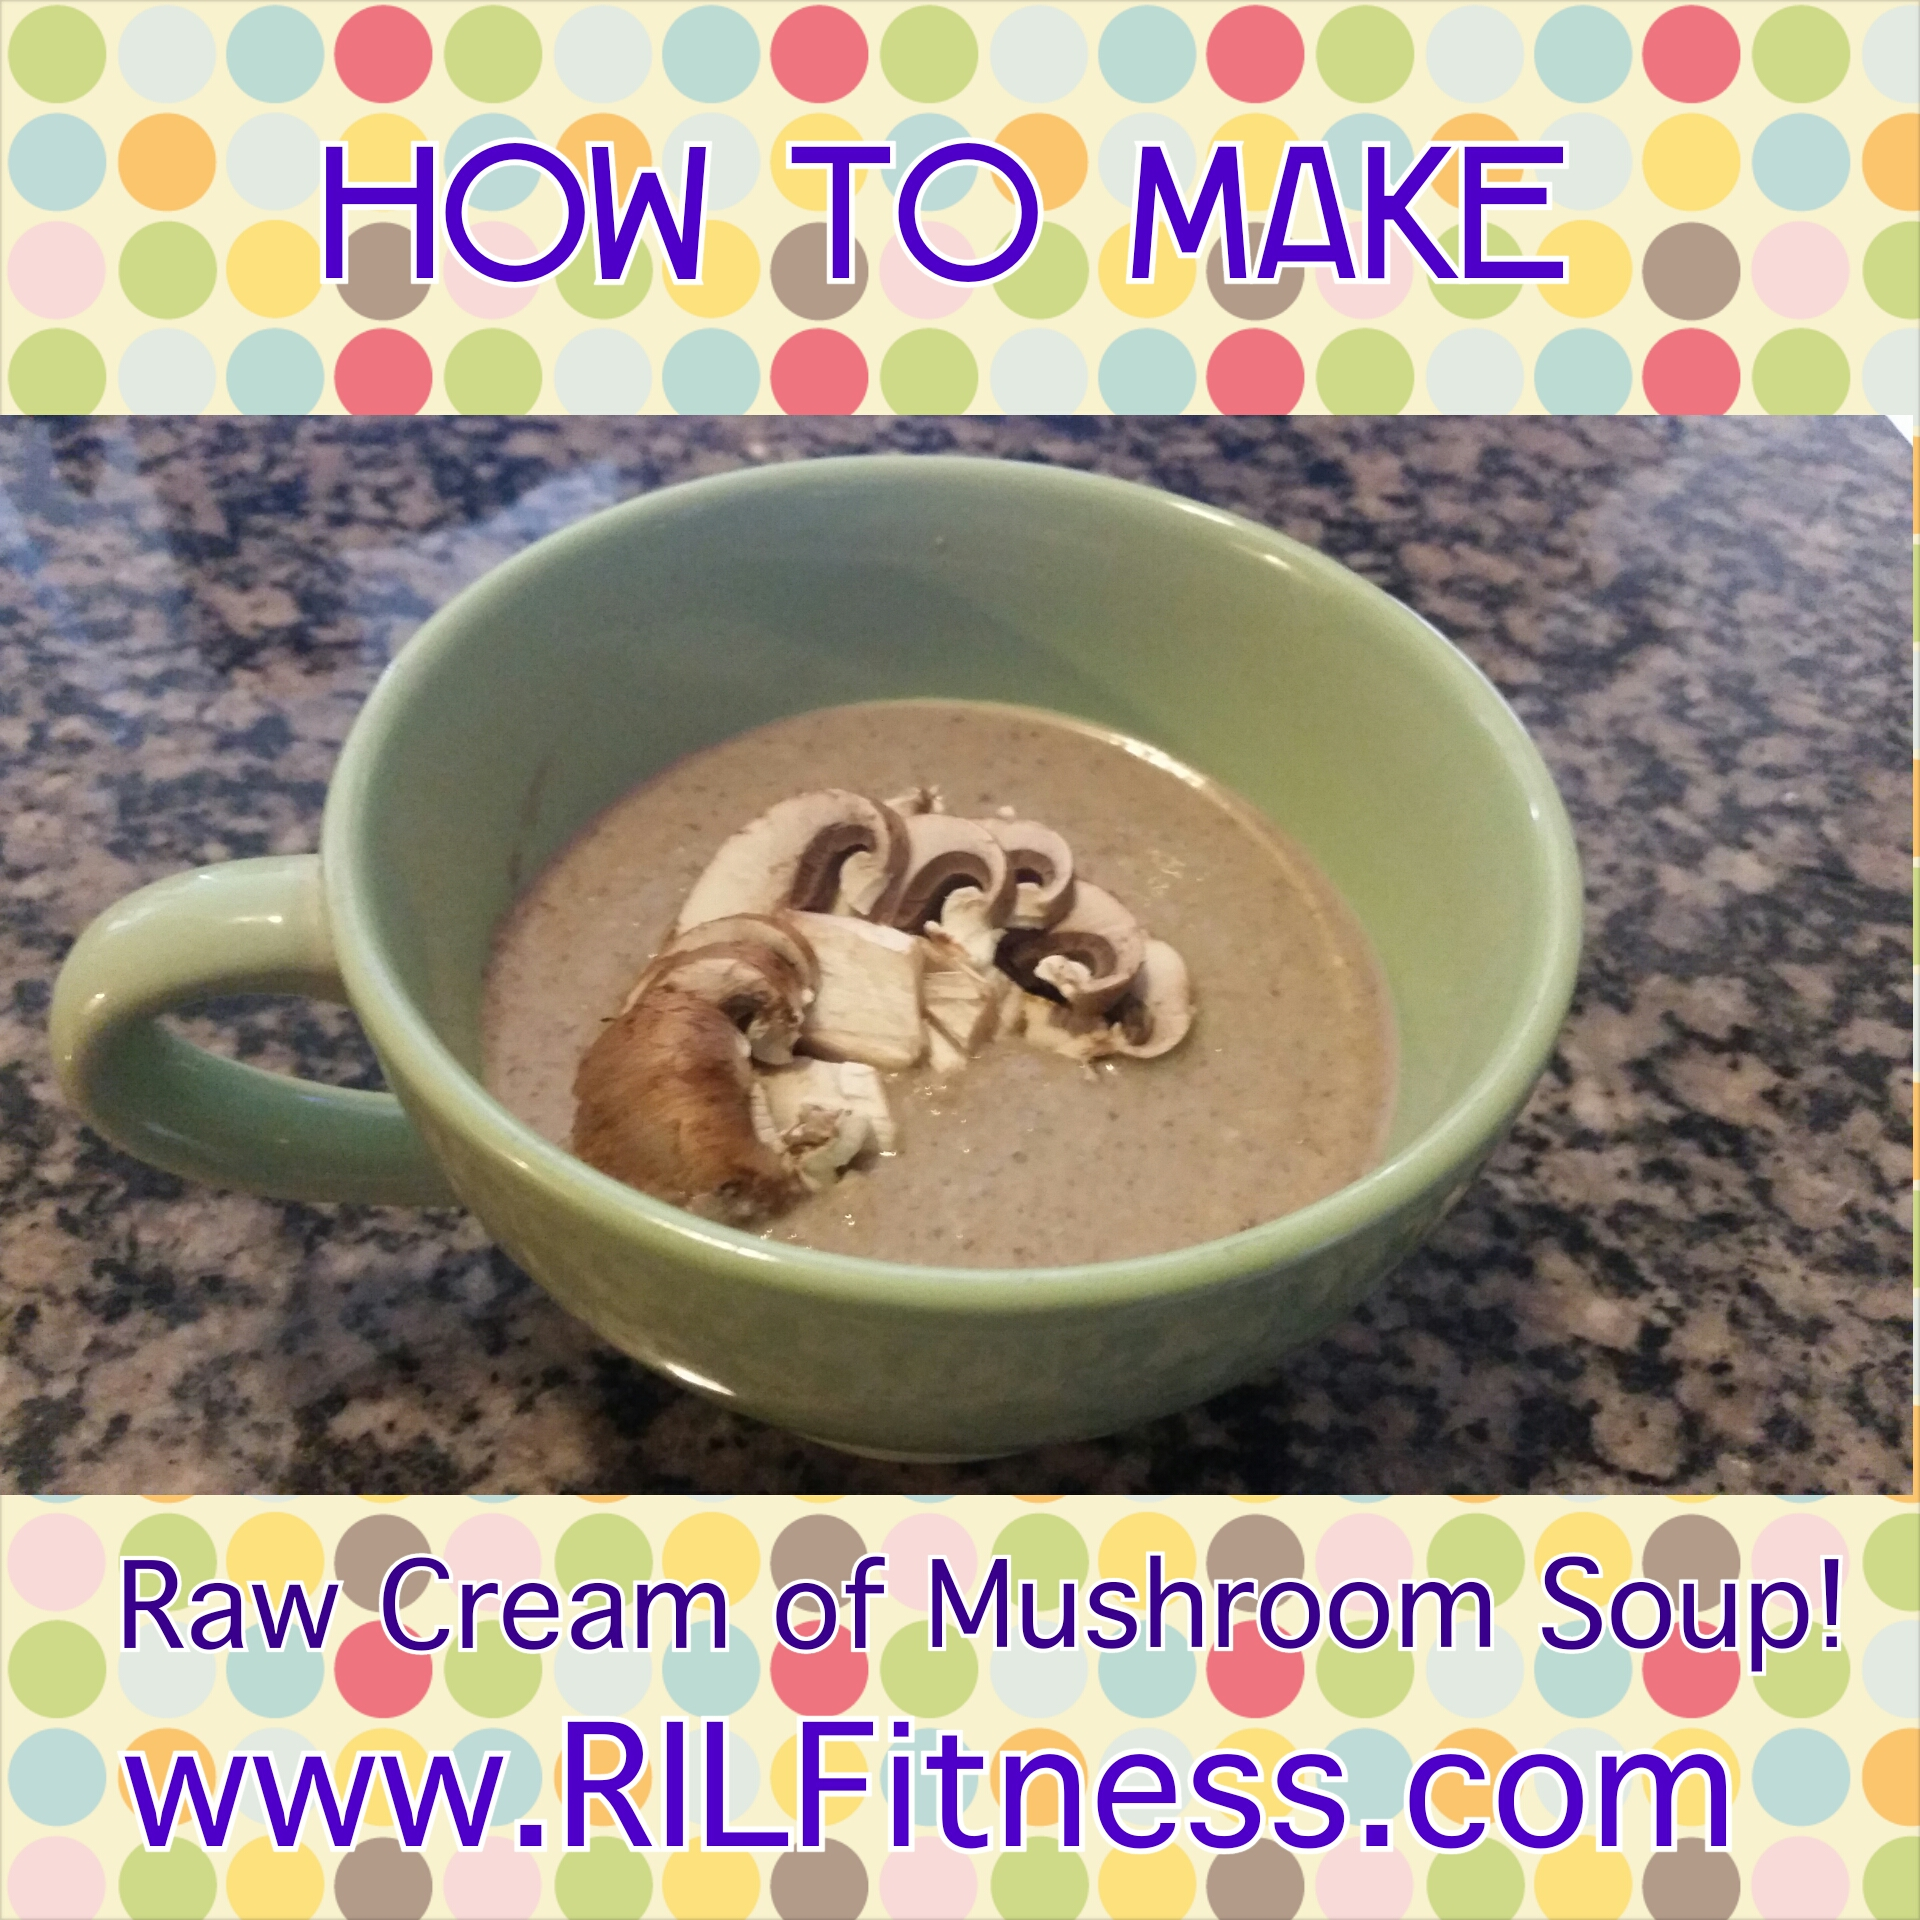 How to Make Raw Cream of Mushroom Soup!